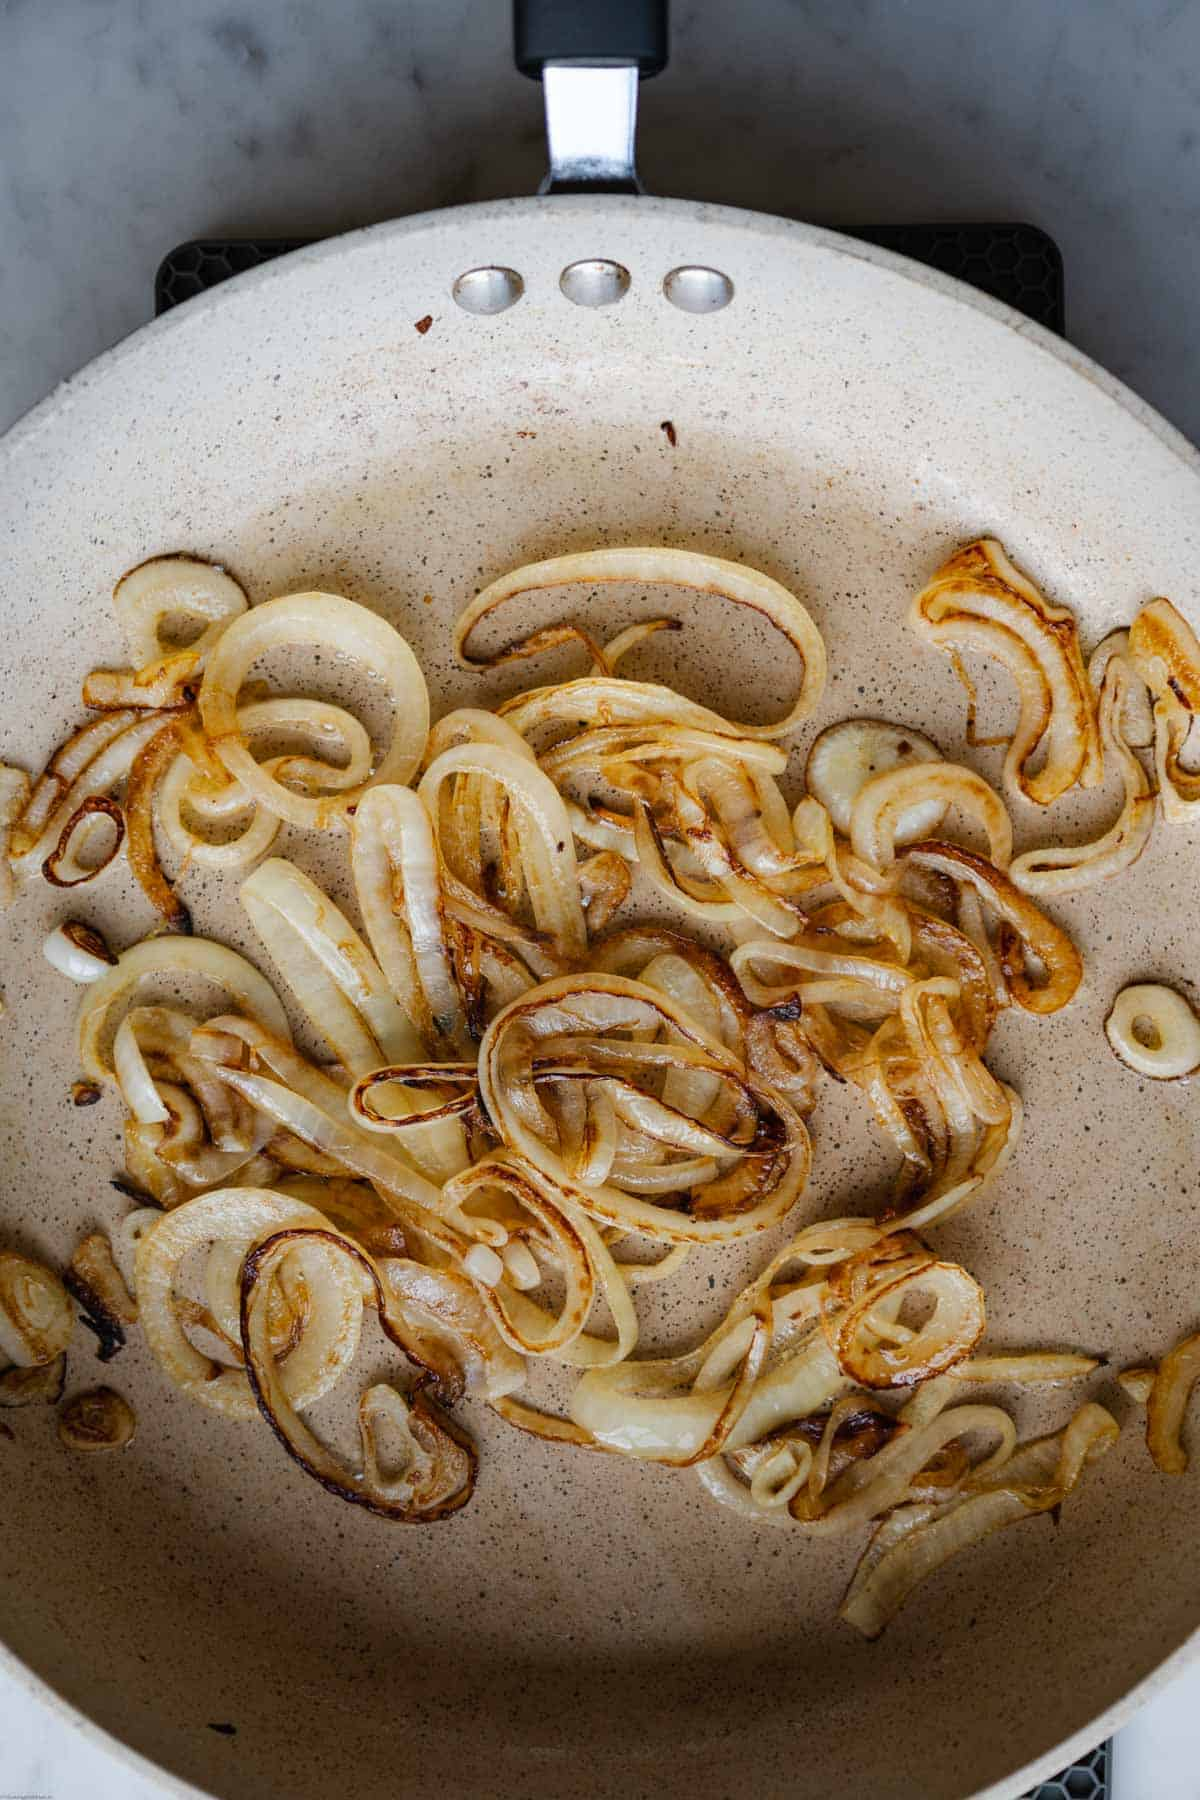 Caramelized onions in a large skillet.